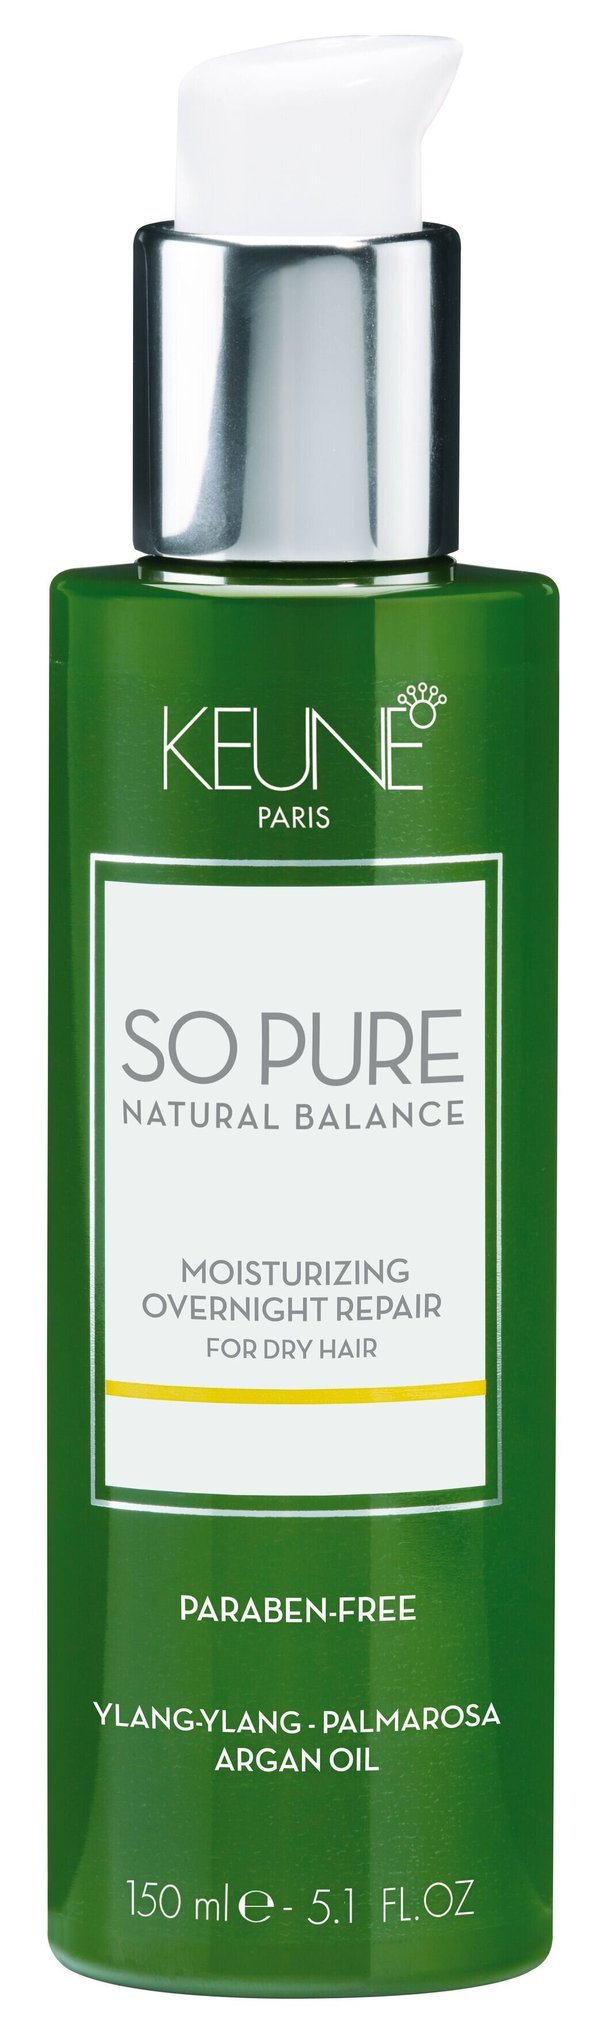 Foto do produto SO PURE MOISTURIZING OVERNIGHT REPAIR